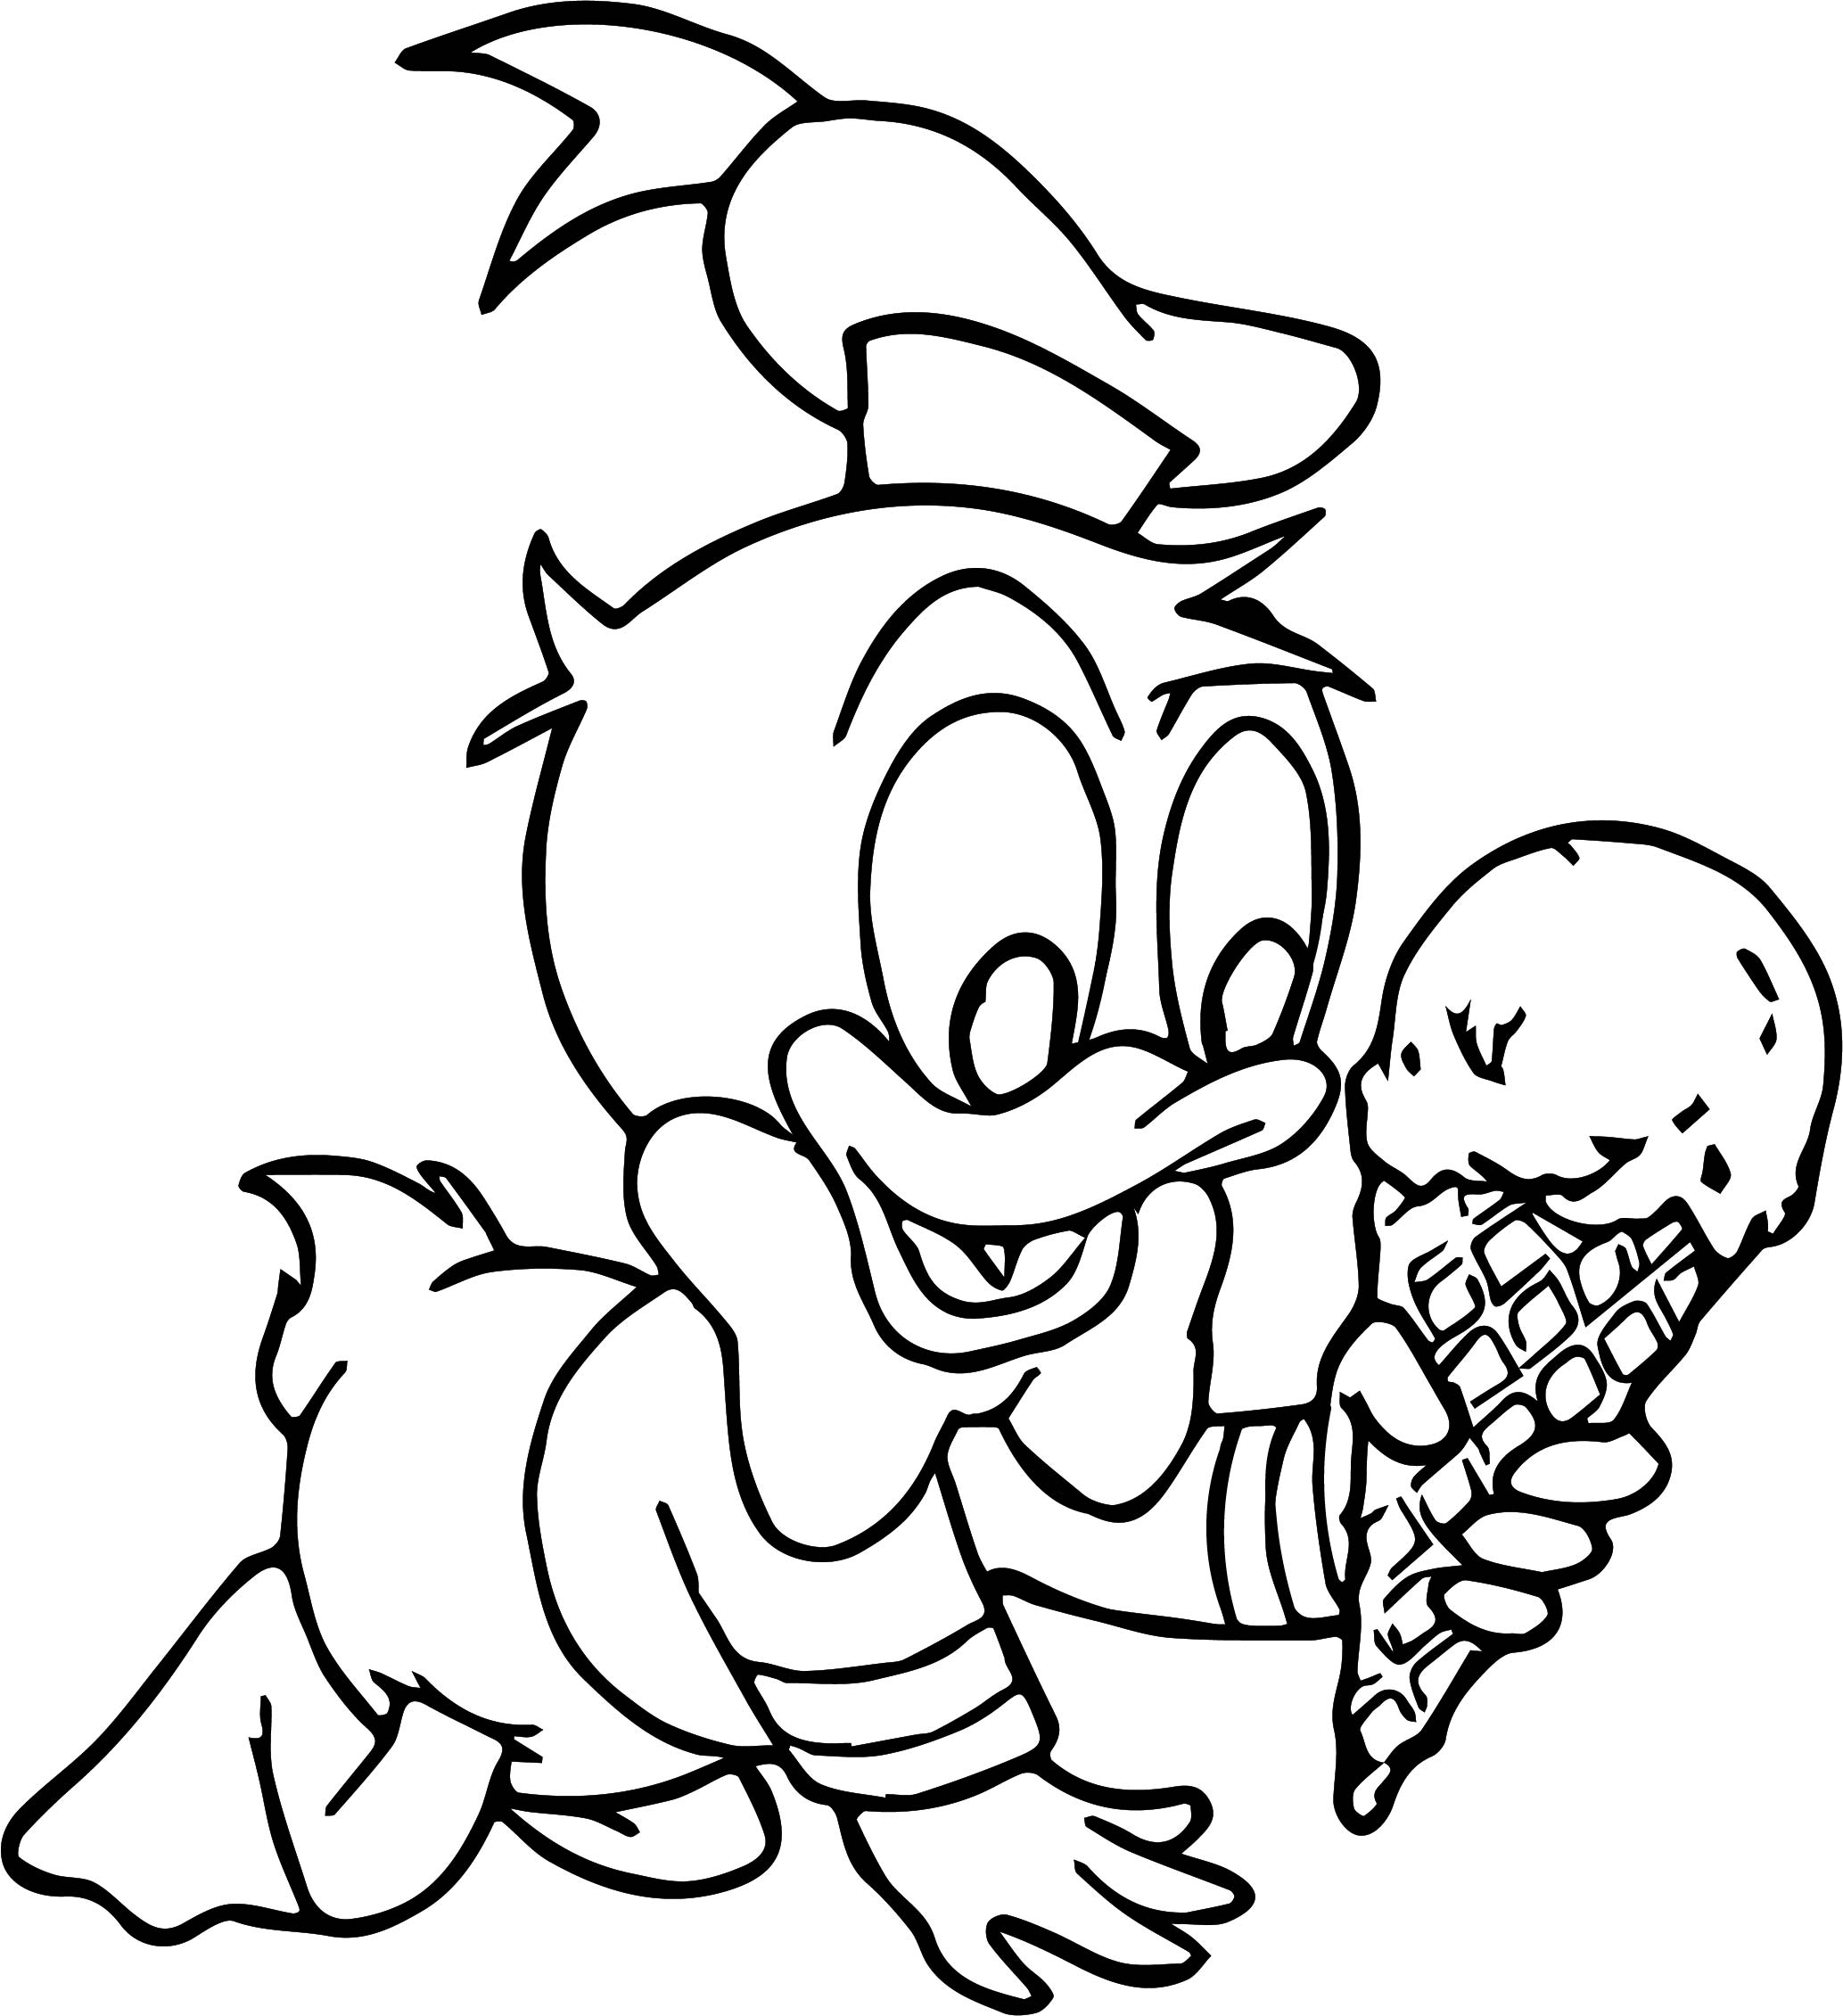 duck coloring page - baby donald duck ice cream coloring page